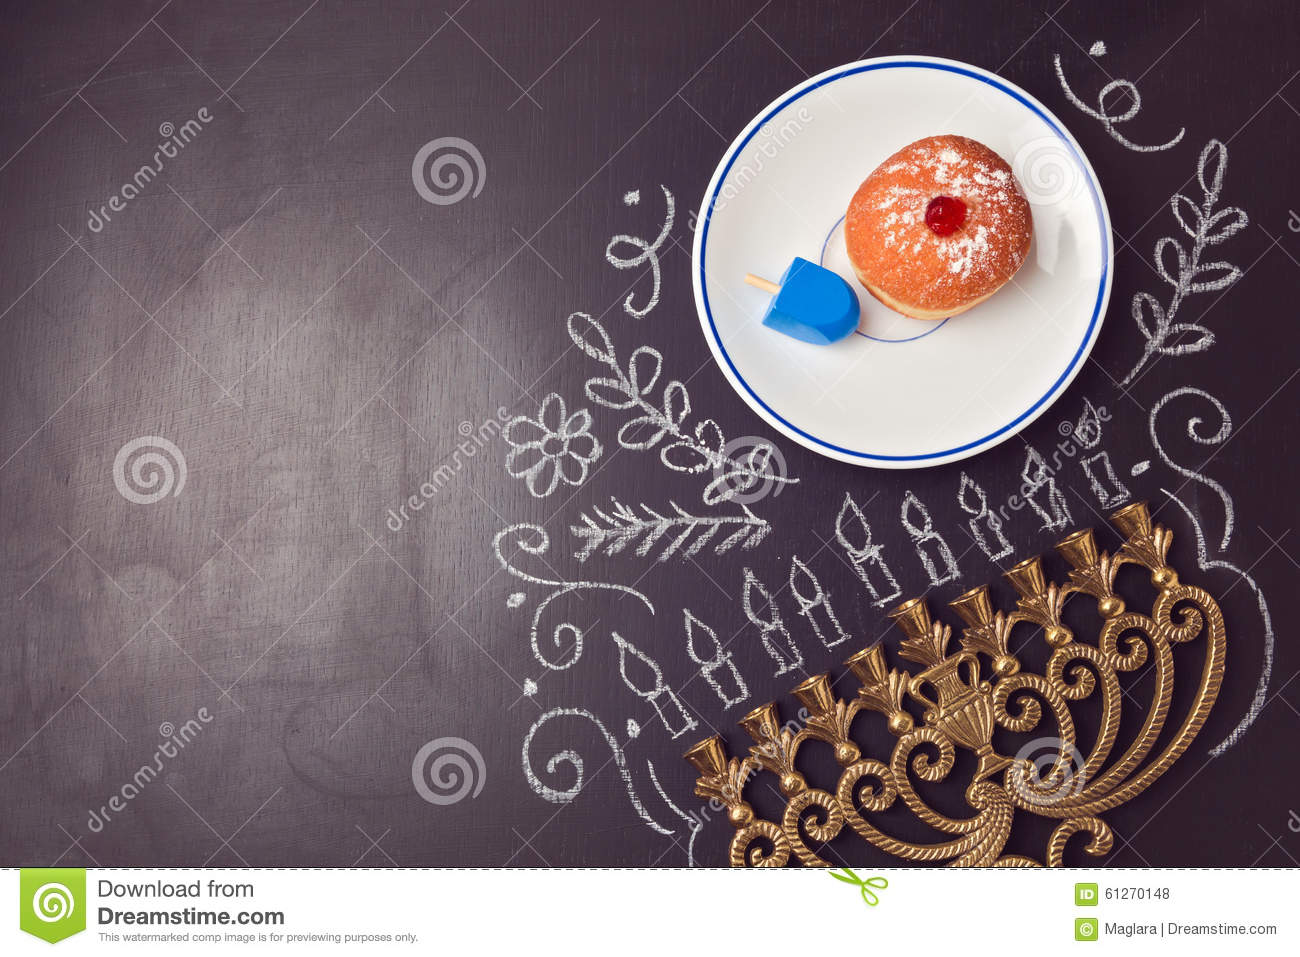 Hanukkah holiday background with menorah and sufganiyot over chalkboard. View from above